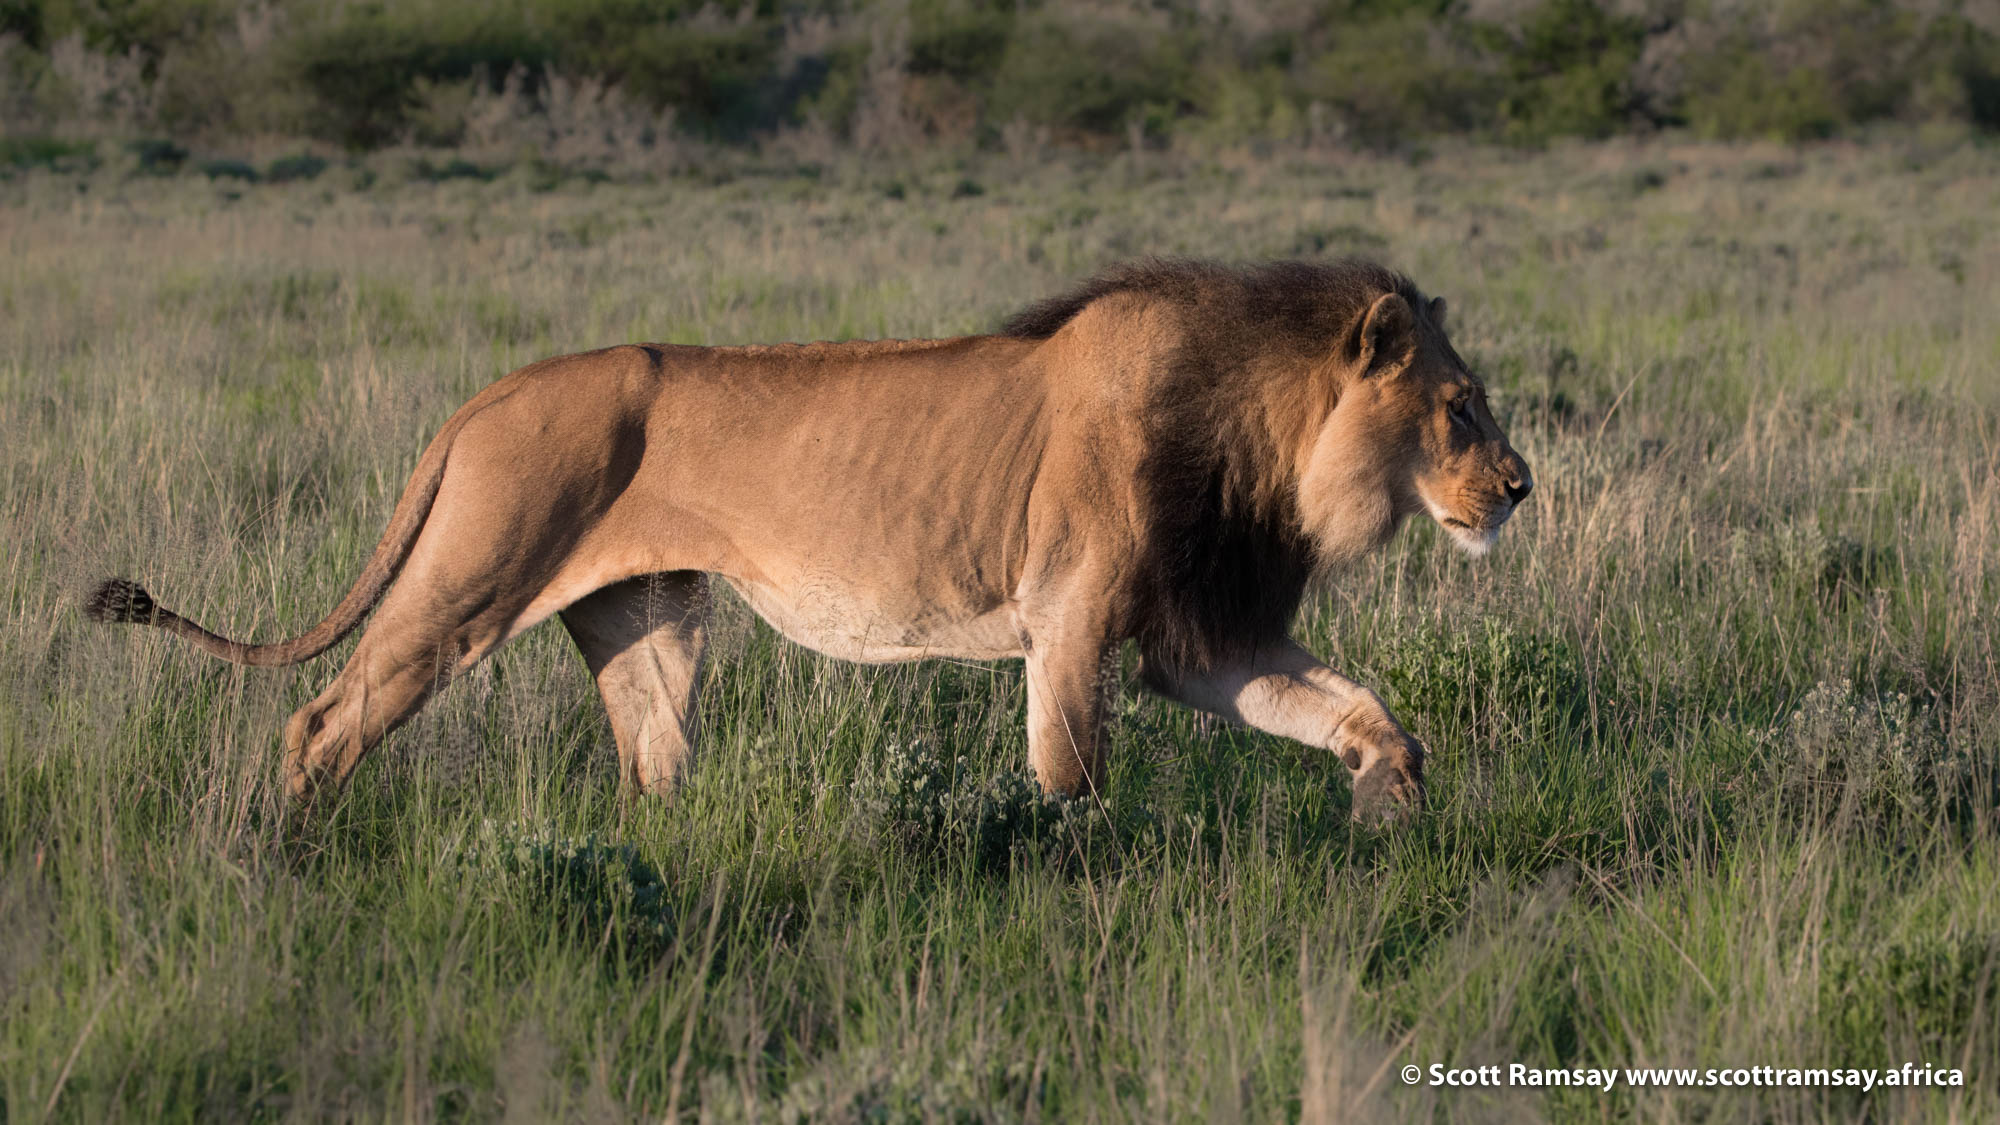 And soon after, as the sun is up, another male comes sauntering up behind us! He had come from the direction of our campsite, and no doubt had spent the night nearby. He headed straight for the young male and the lioness...something was about to happen.